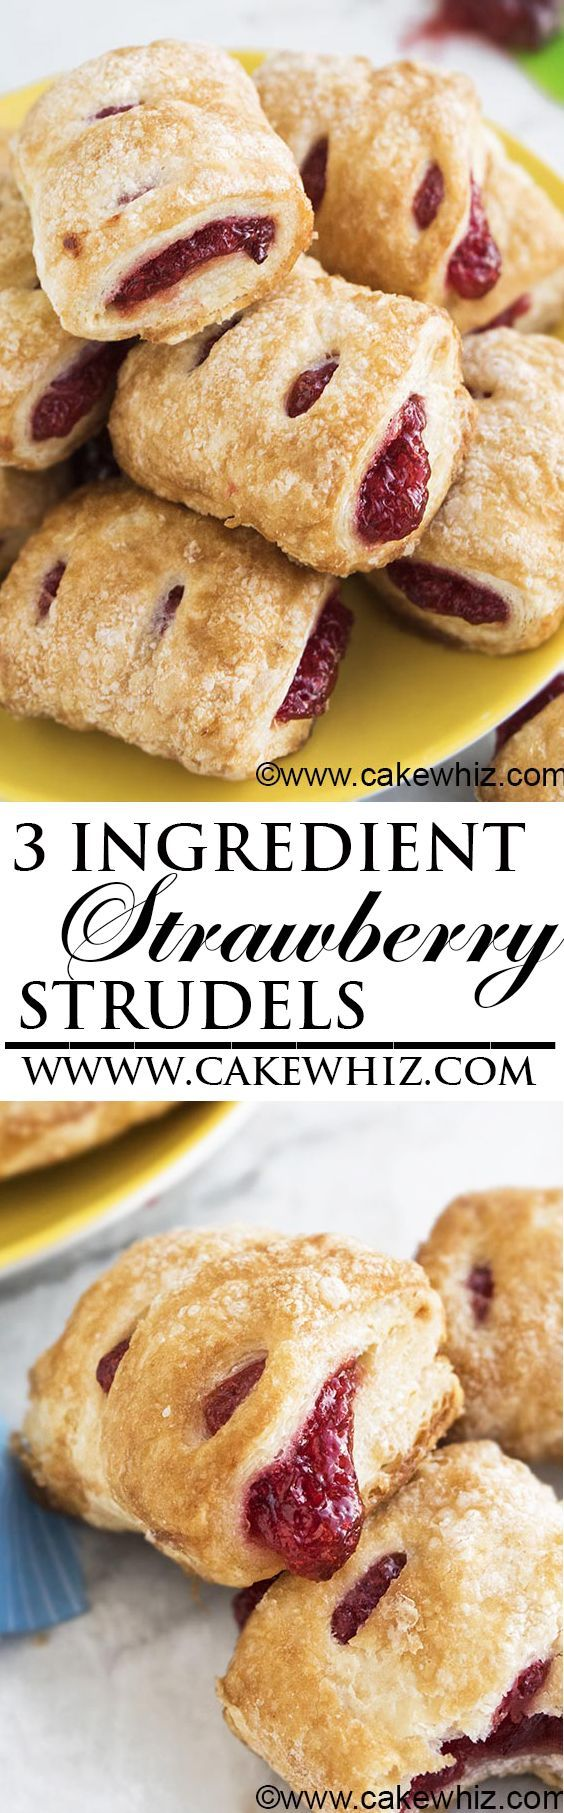 These EASY STRAWBERRY STRUDELS have perfect flaky sugary crispy tops with fruity berry fillings. Great as a Summer snack and ready in just 30 minutes with 3 ingredients! From cakewhiz.com